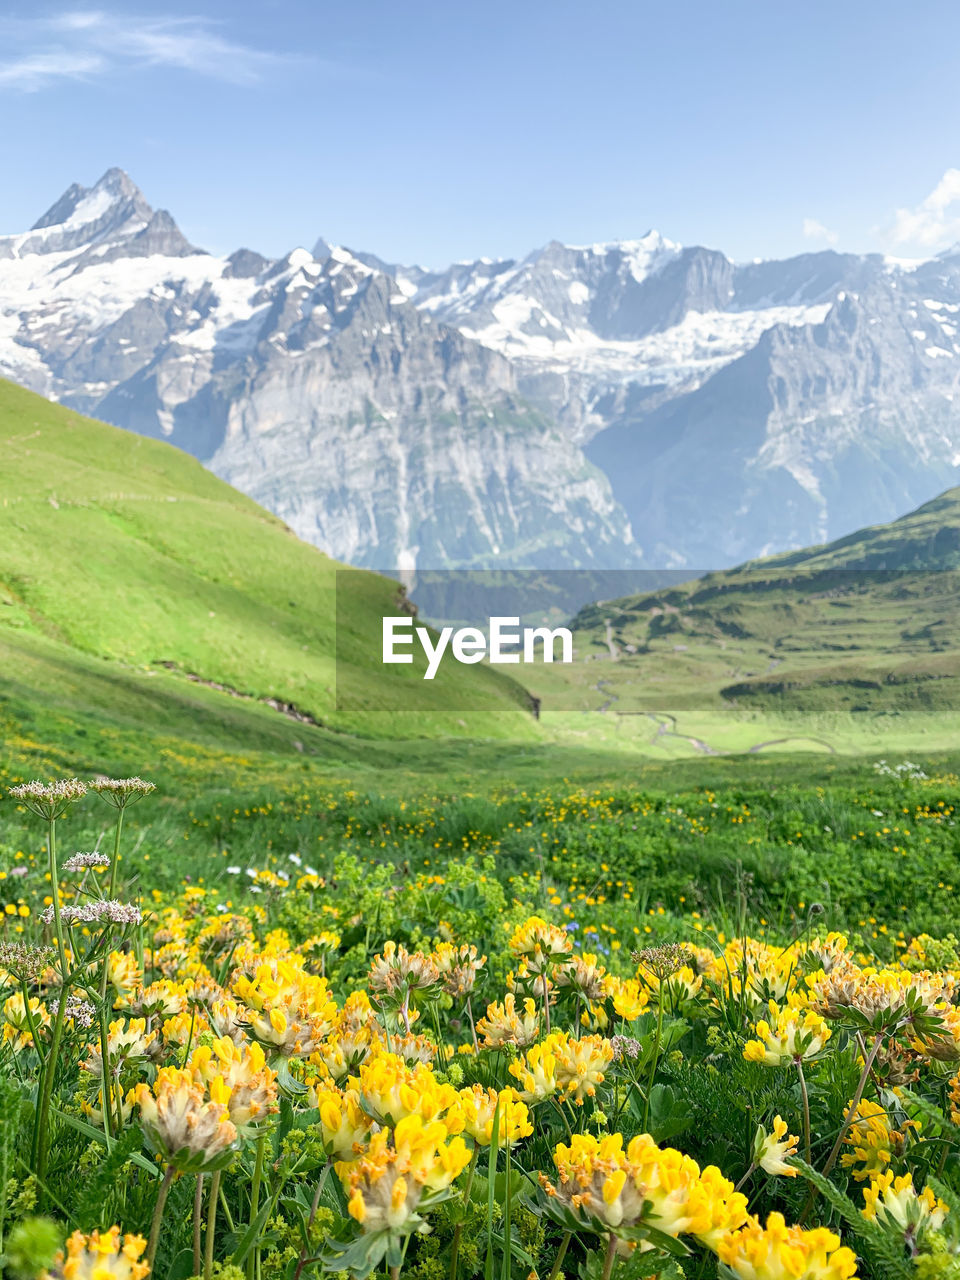 SCENIC VIEW OF FLOWERING FIELD AGAINST MOUNTAINS